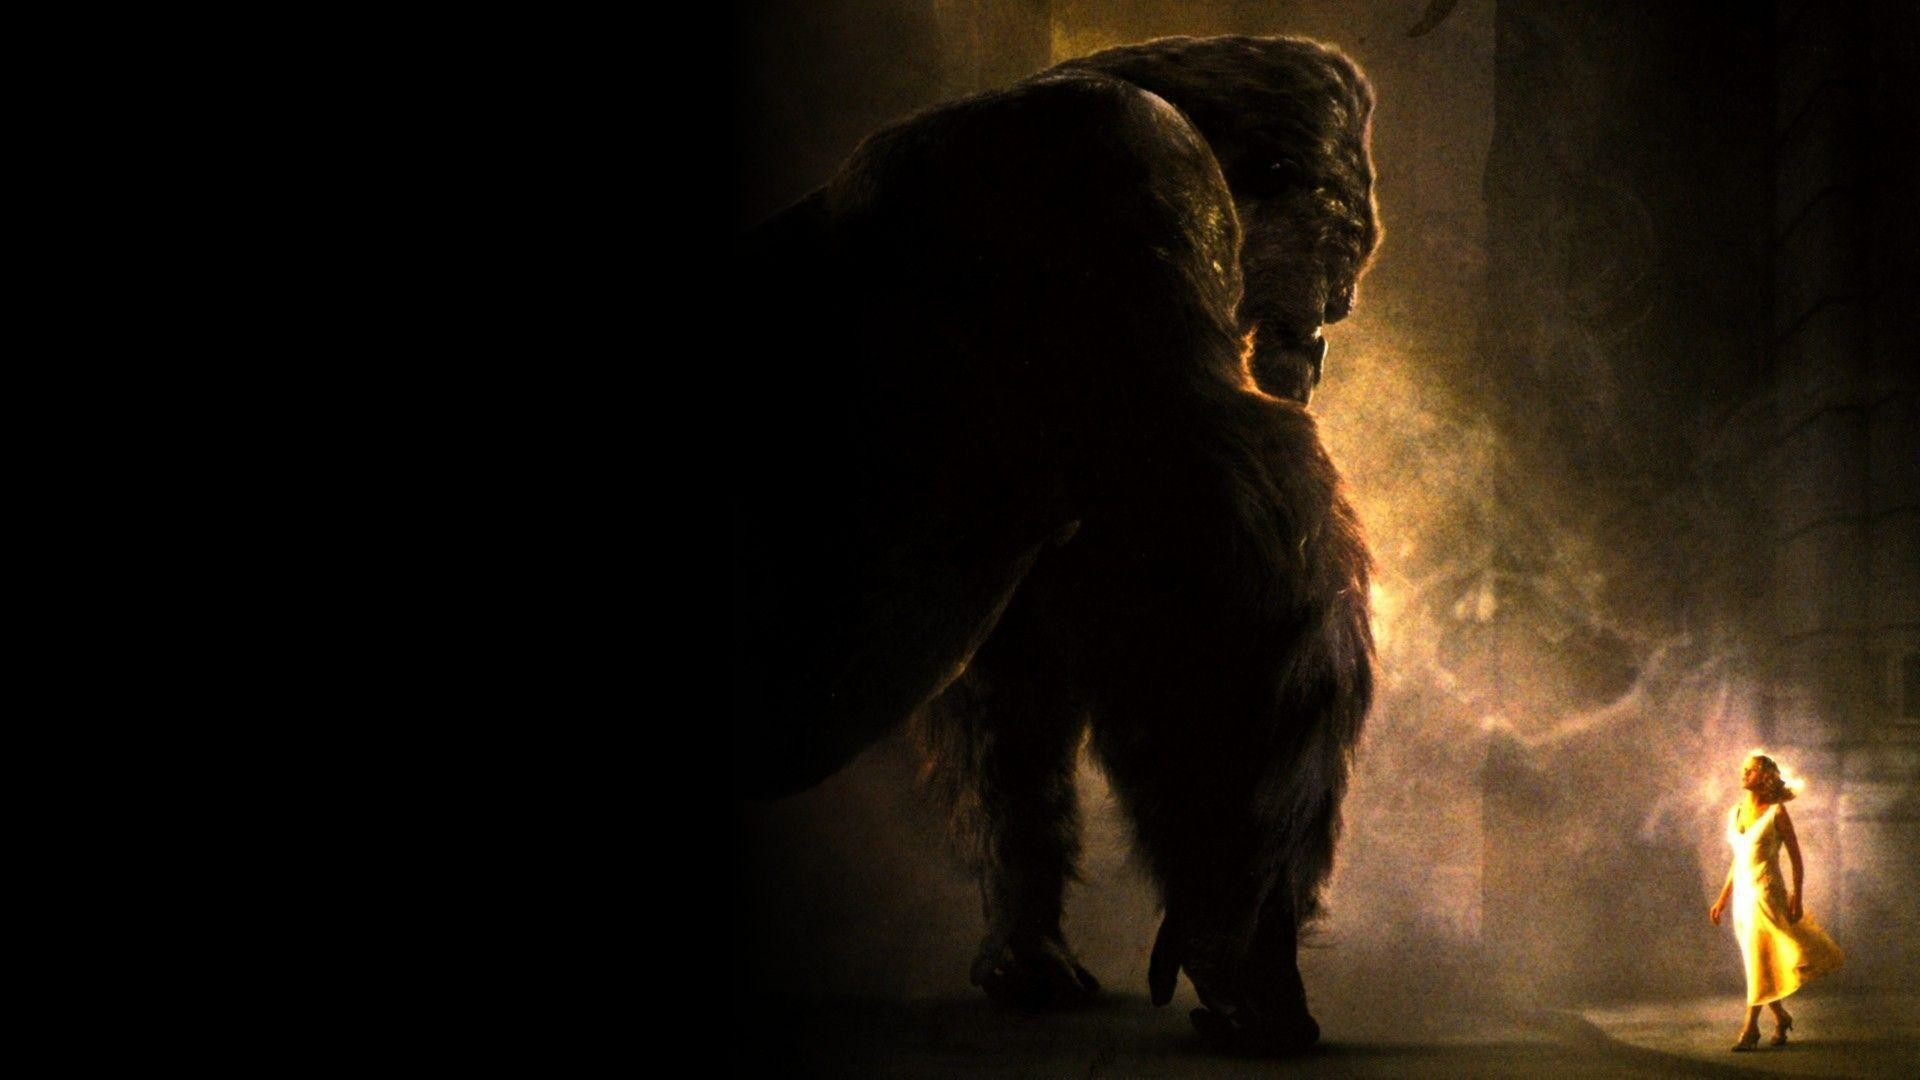 King kong wallpaper hd 73 images - King kong 2005 hd wallpapers ...